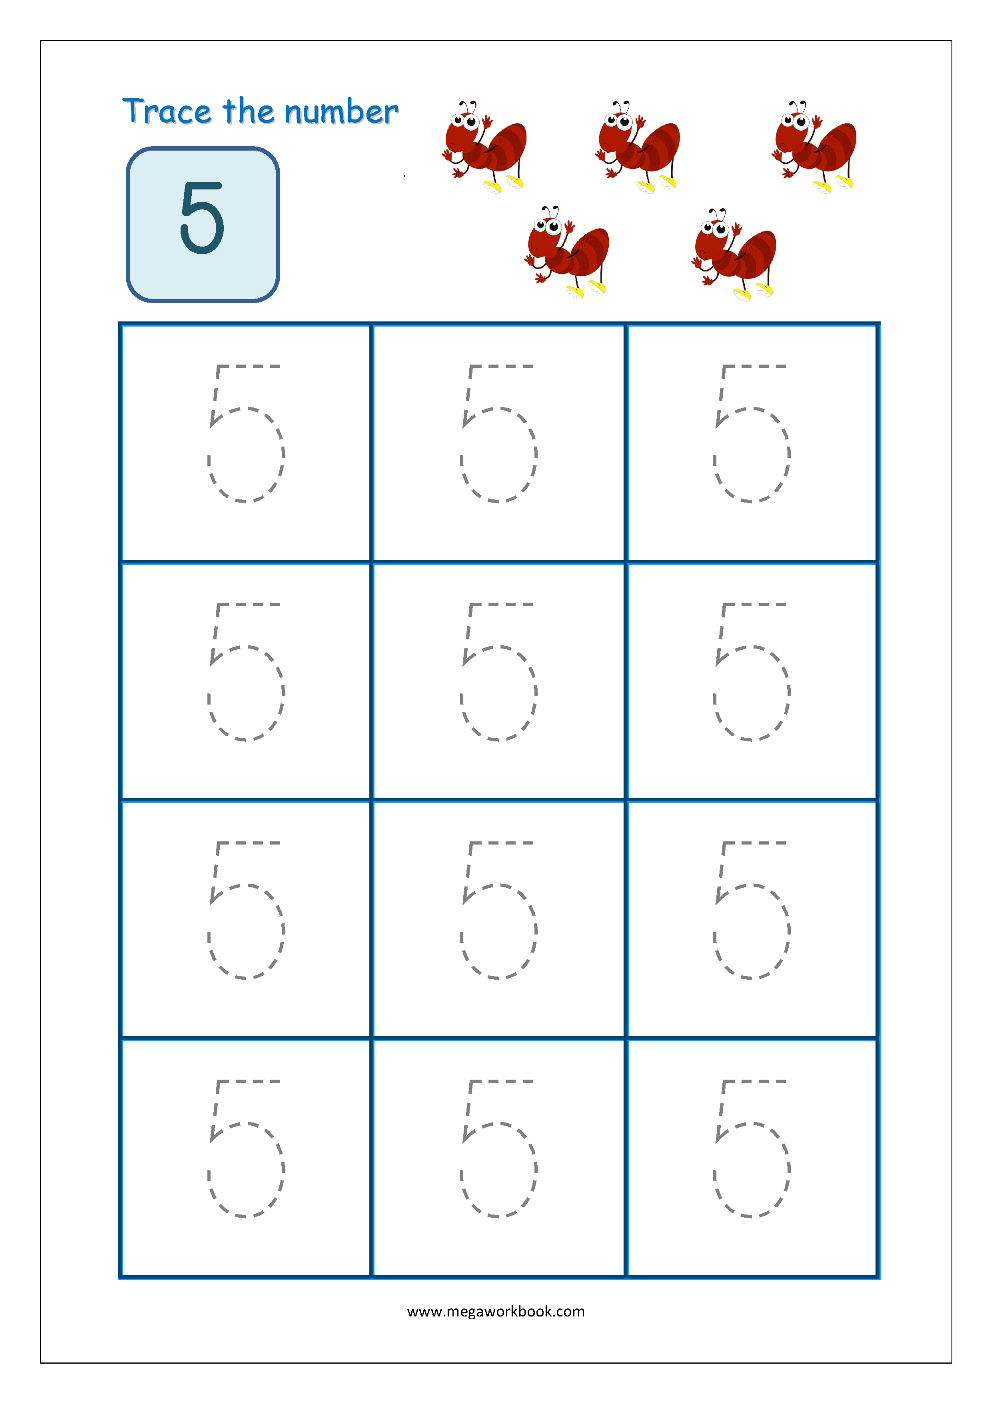 Tracing Numbers 1 To 10 Tracing Number 1 Tracing Numbers with Letter 5 Tracing